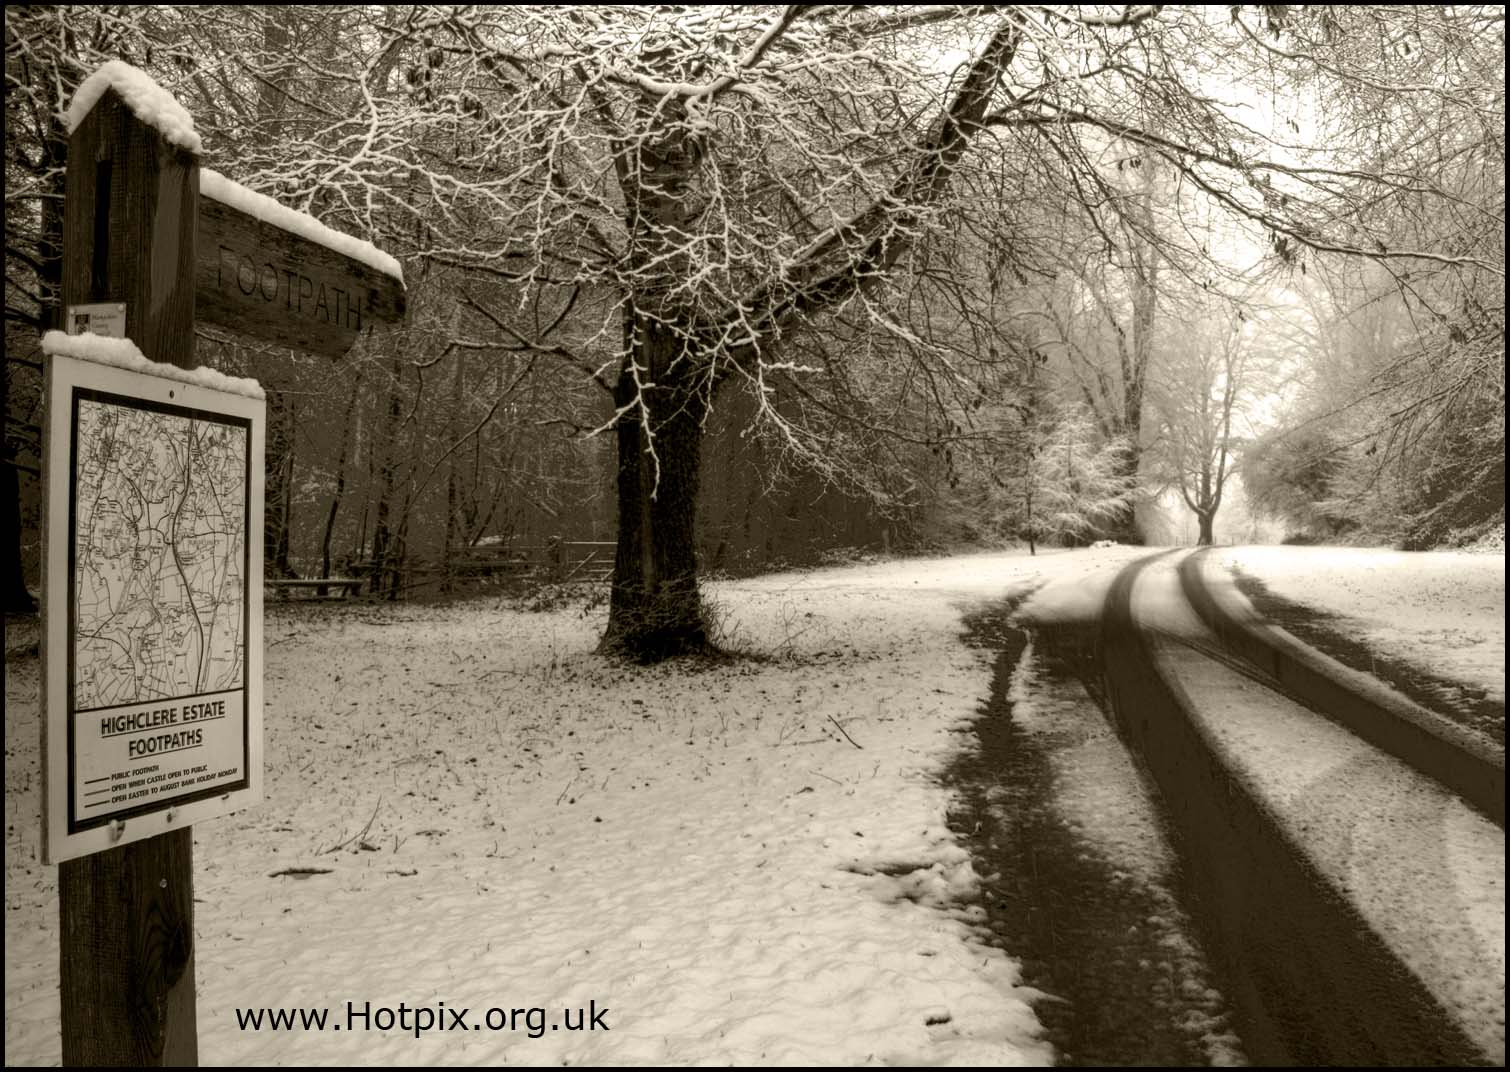 snow,winter,trees,newbury,highclere,estate,castle,map,sepia,black,white,monochrome,finger,post,sign,foot,path,footpaths,lane,road,tracks,A34,Jeeves,Wooster,Stephen,Fry,Berkshire,England,RG20,east,woodhey,ashmansworth,whitway,broad,laying,penwood,woolton,hill,burgeclere,sydmonton,B/W,mono,hotpix!